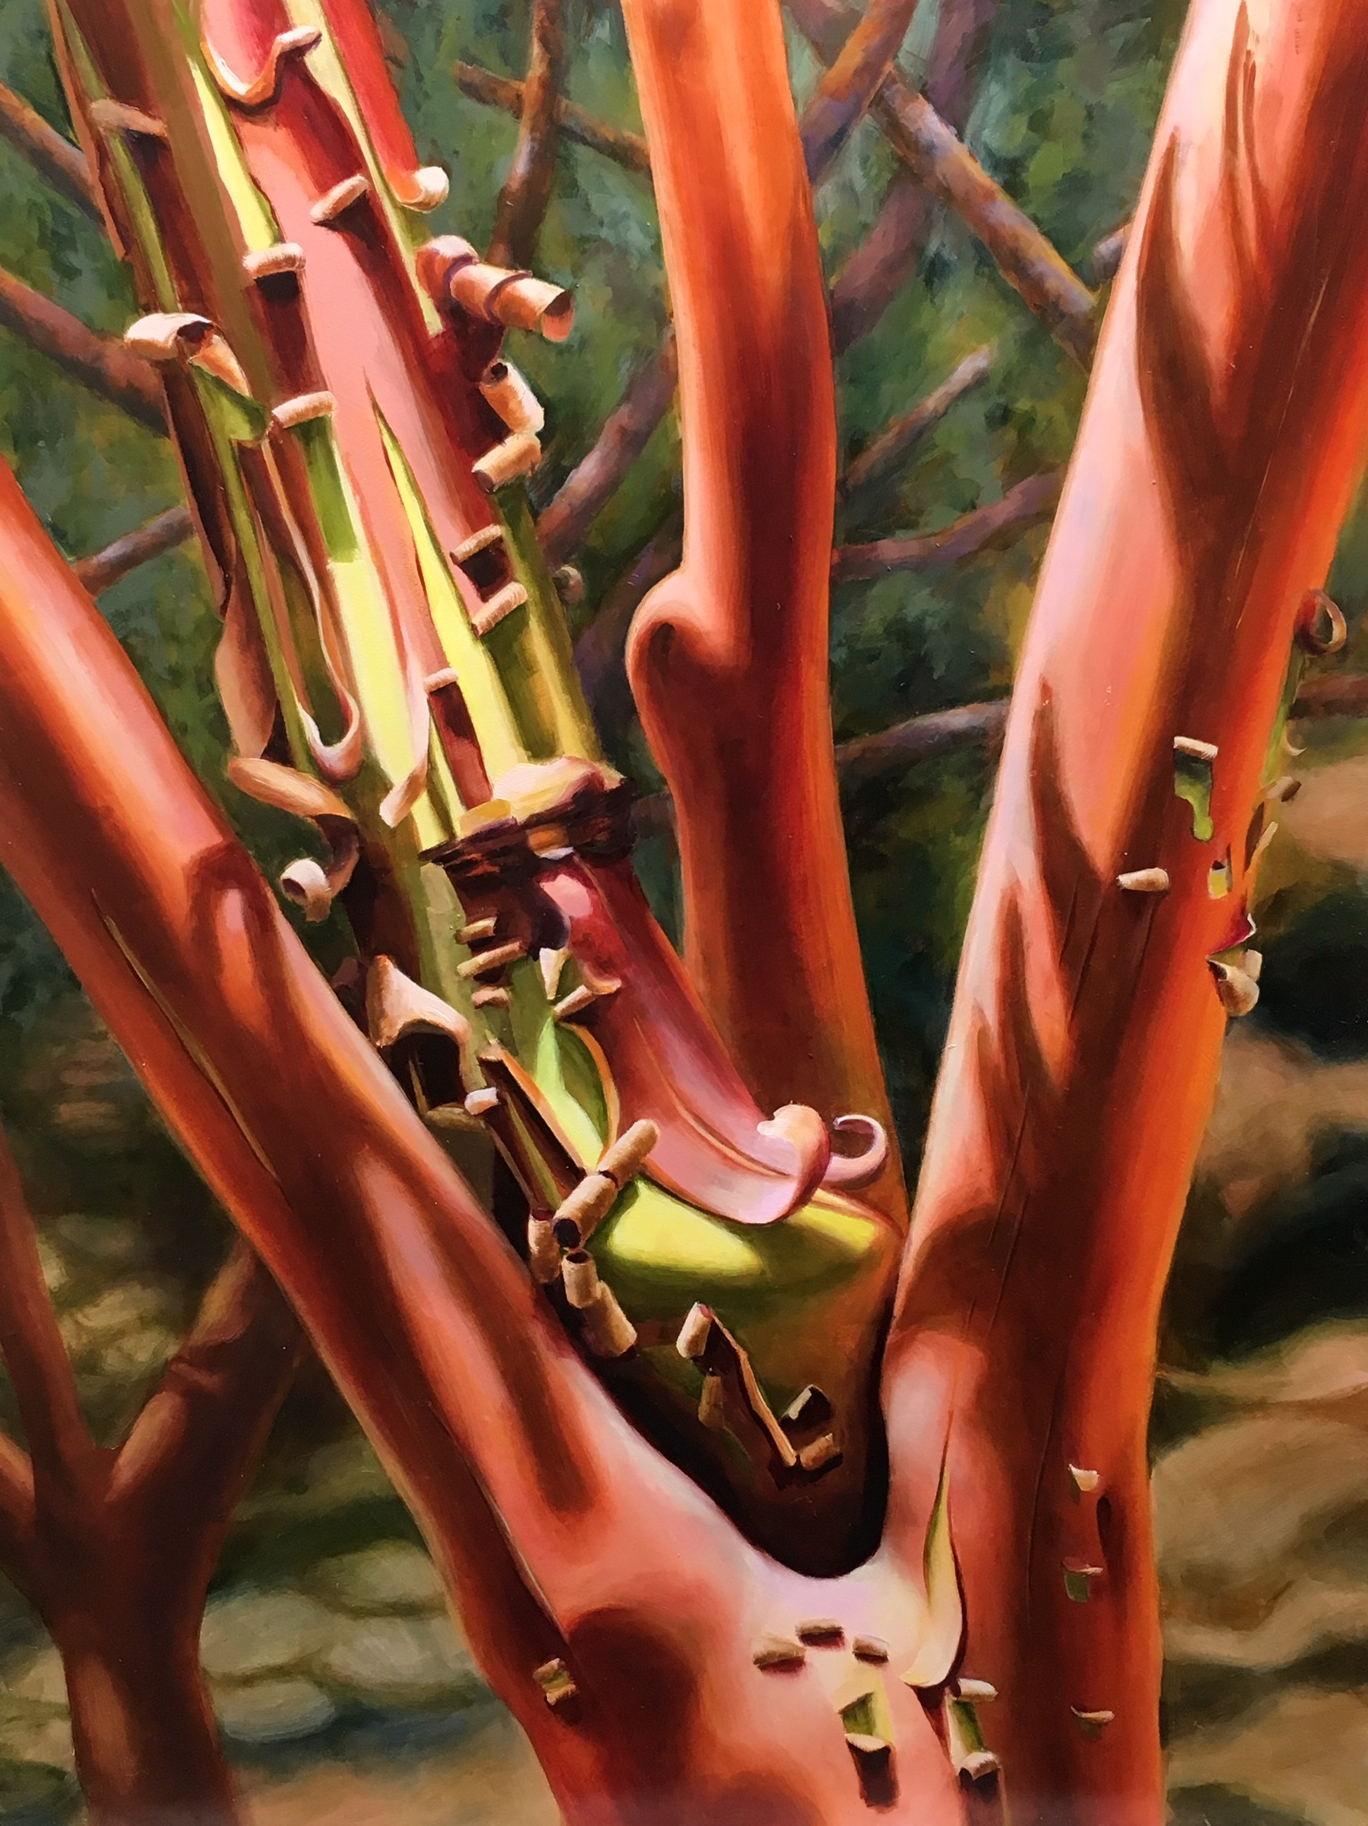 Peeling Manzanita  - 18x24 - Oil on Panel